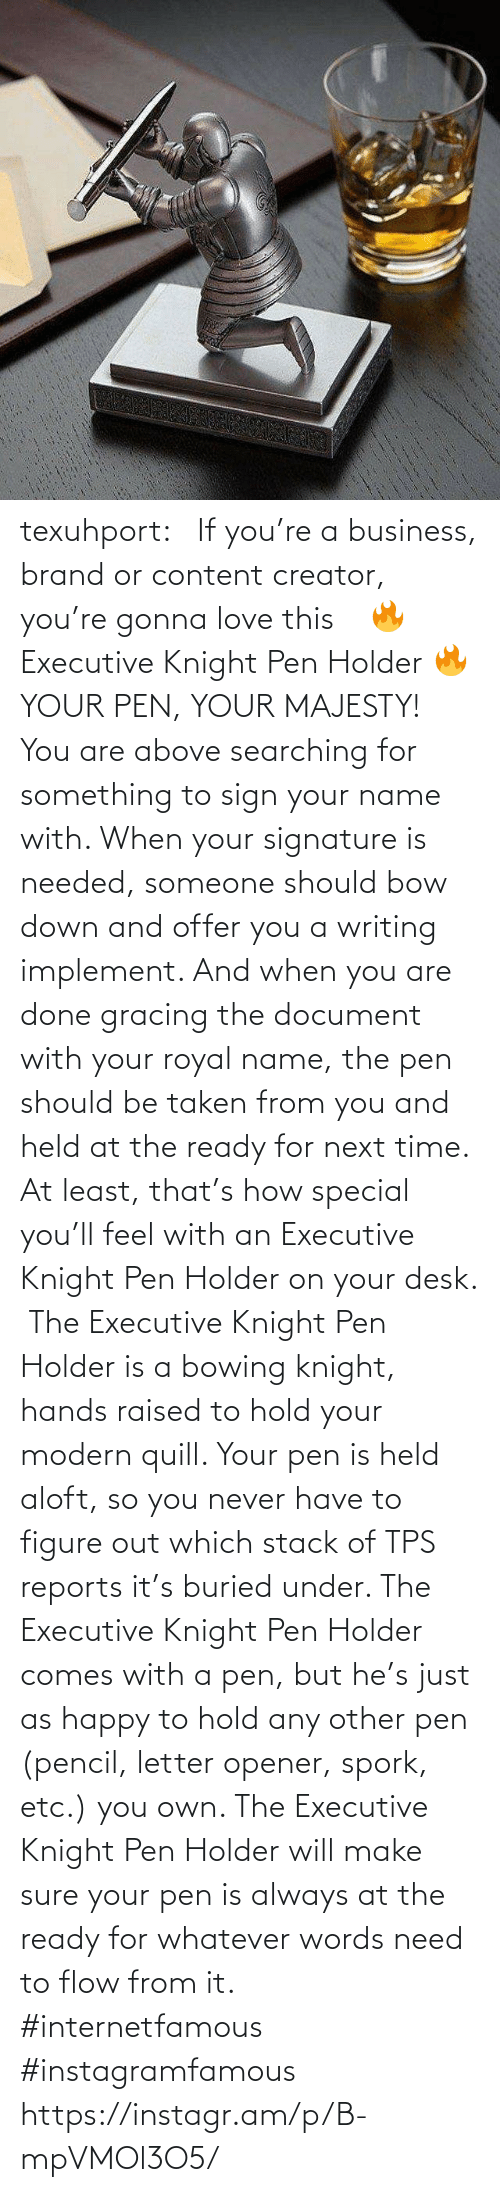 Next Time: texuhport:⎆ If you're a business, brand or content creator, you're gonna love this ⎆⁣ 🔥 Executive Knight Pen Holder 🔥⁣ YOUR PEN, YOUR MAJESTY!⁣ ⁣ You are above searching for something to sign your name with. When your signature is needed, someone should bow down and offer you a writing implement. And when you are done gracing the document with your royal name, the pen should be taken from you and held at the ready for next time. At least, that's how special you'll feel with an Executive Knight Pen Holder on your desk.⁣ ⁣ The Executive Knight Pen Holder is a bowing knight, hands raised to hold your modern quill. Your pen is held aloft, so you never have to figure out which stack of TPS reports it's buried under. The Executive Knight Pen Holder comes with a pen, but he's just as happy to hold any other pen (pencil, letter opener, spork, etc.) you own. The Executive Knight Pen Holder will make sure your pen is always at the ready for whatever words need to flow from it.⁣ #internetfamous  #instagramfamous https://instagr.am/p/B-mpVMOl3O5/